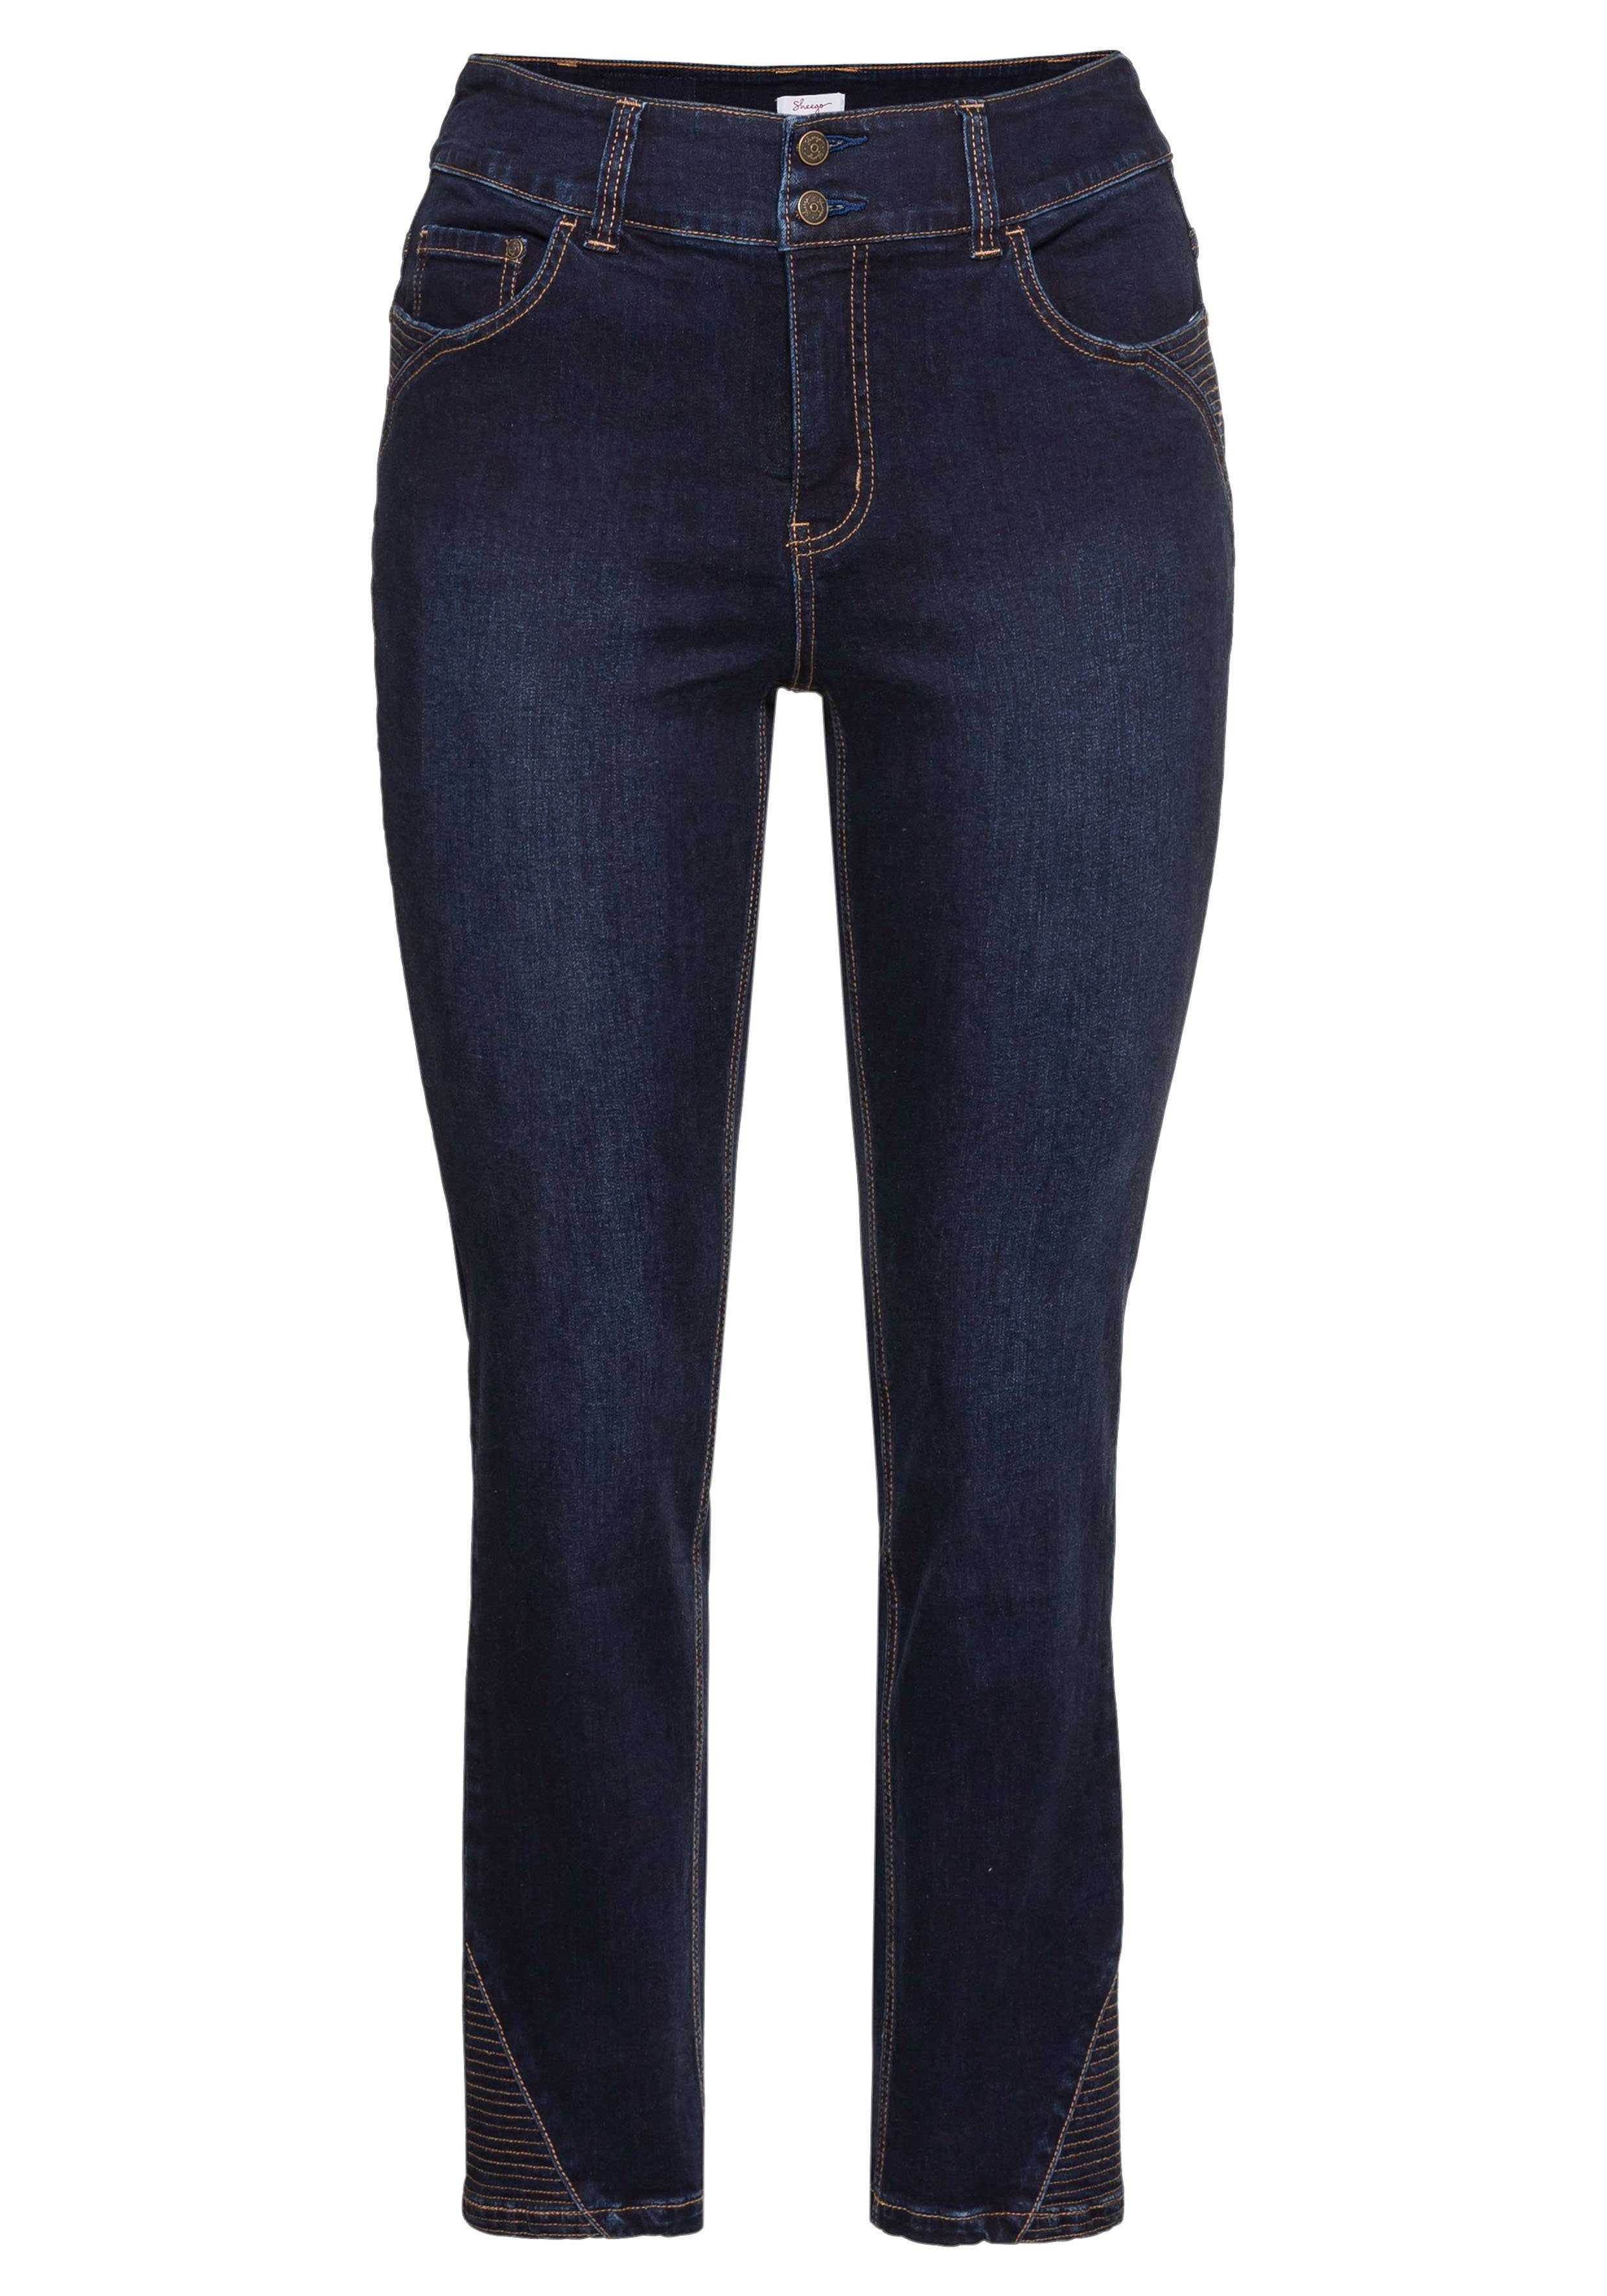 Sheego Gerade Jeans LANA Stretch 5-Pocket Bio-Baumwolle nmlLmi